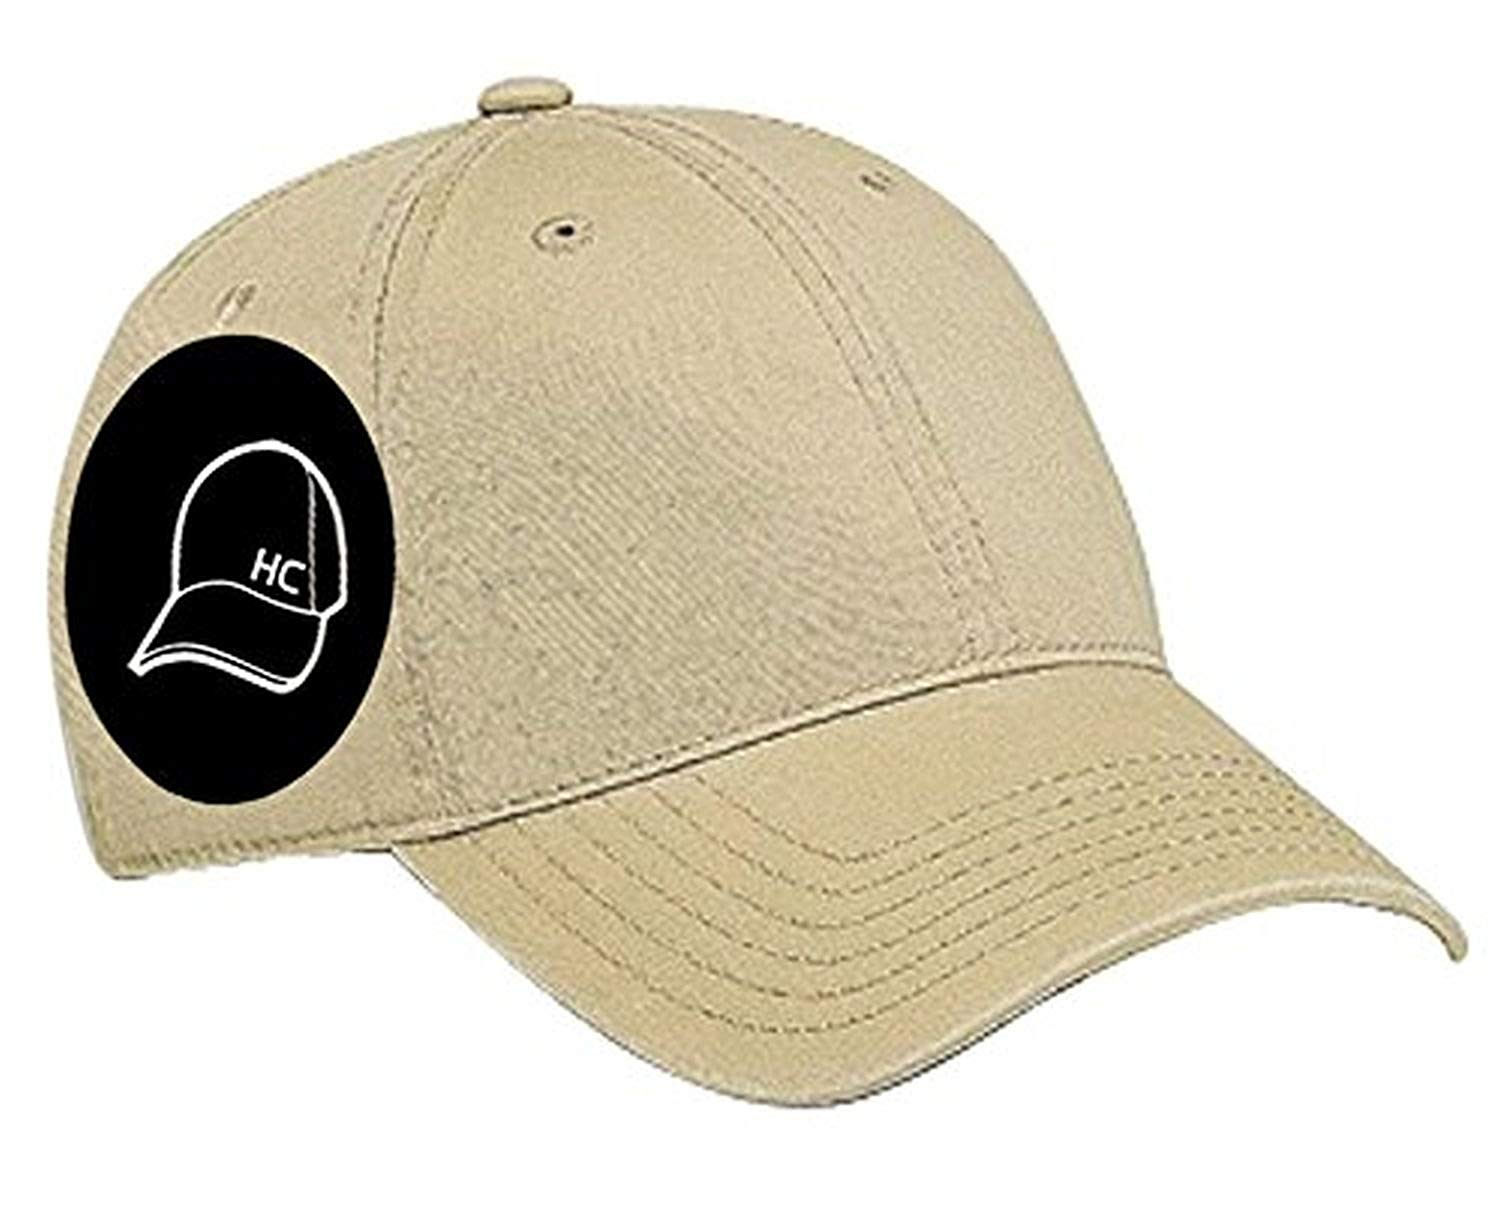 Hats & Caps Shop Organic Superior Garment Washed Cn Twill Low Profile Pro Style Caps - By TheTargetBuys